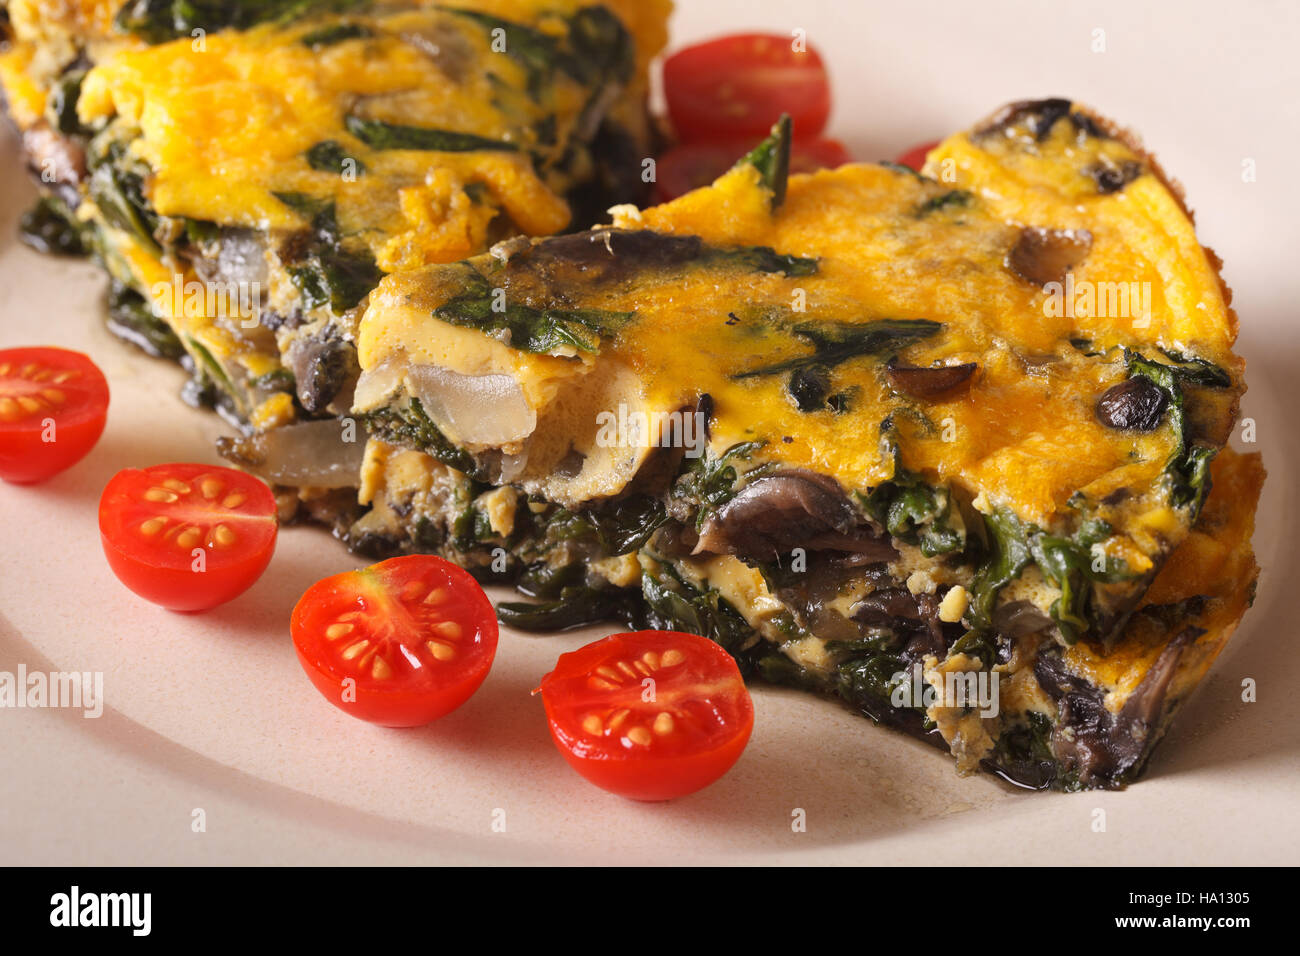 Frittata with spinach and mushrooms on a plate close-up. horizontal - Stock Image